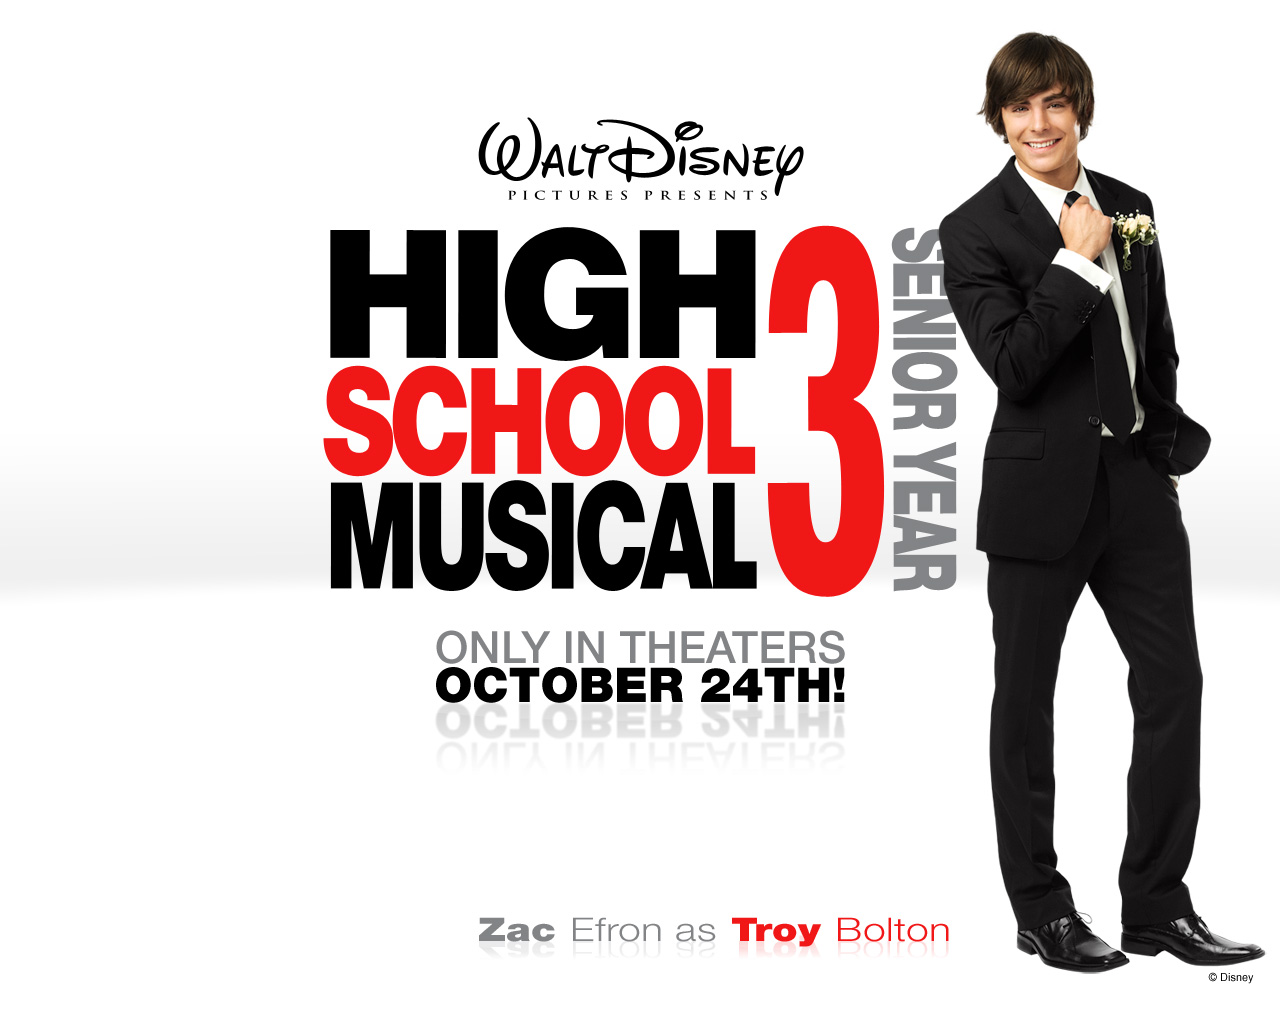 Zac Efron In High School Musical   High School Musical 3 Hd 1280x1024